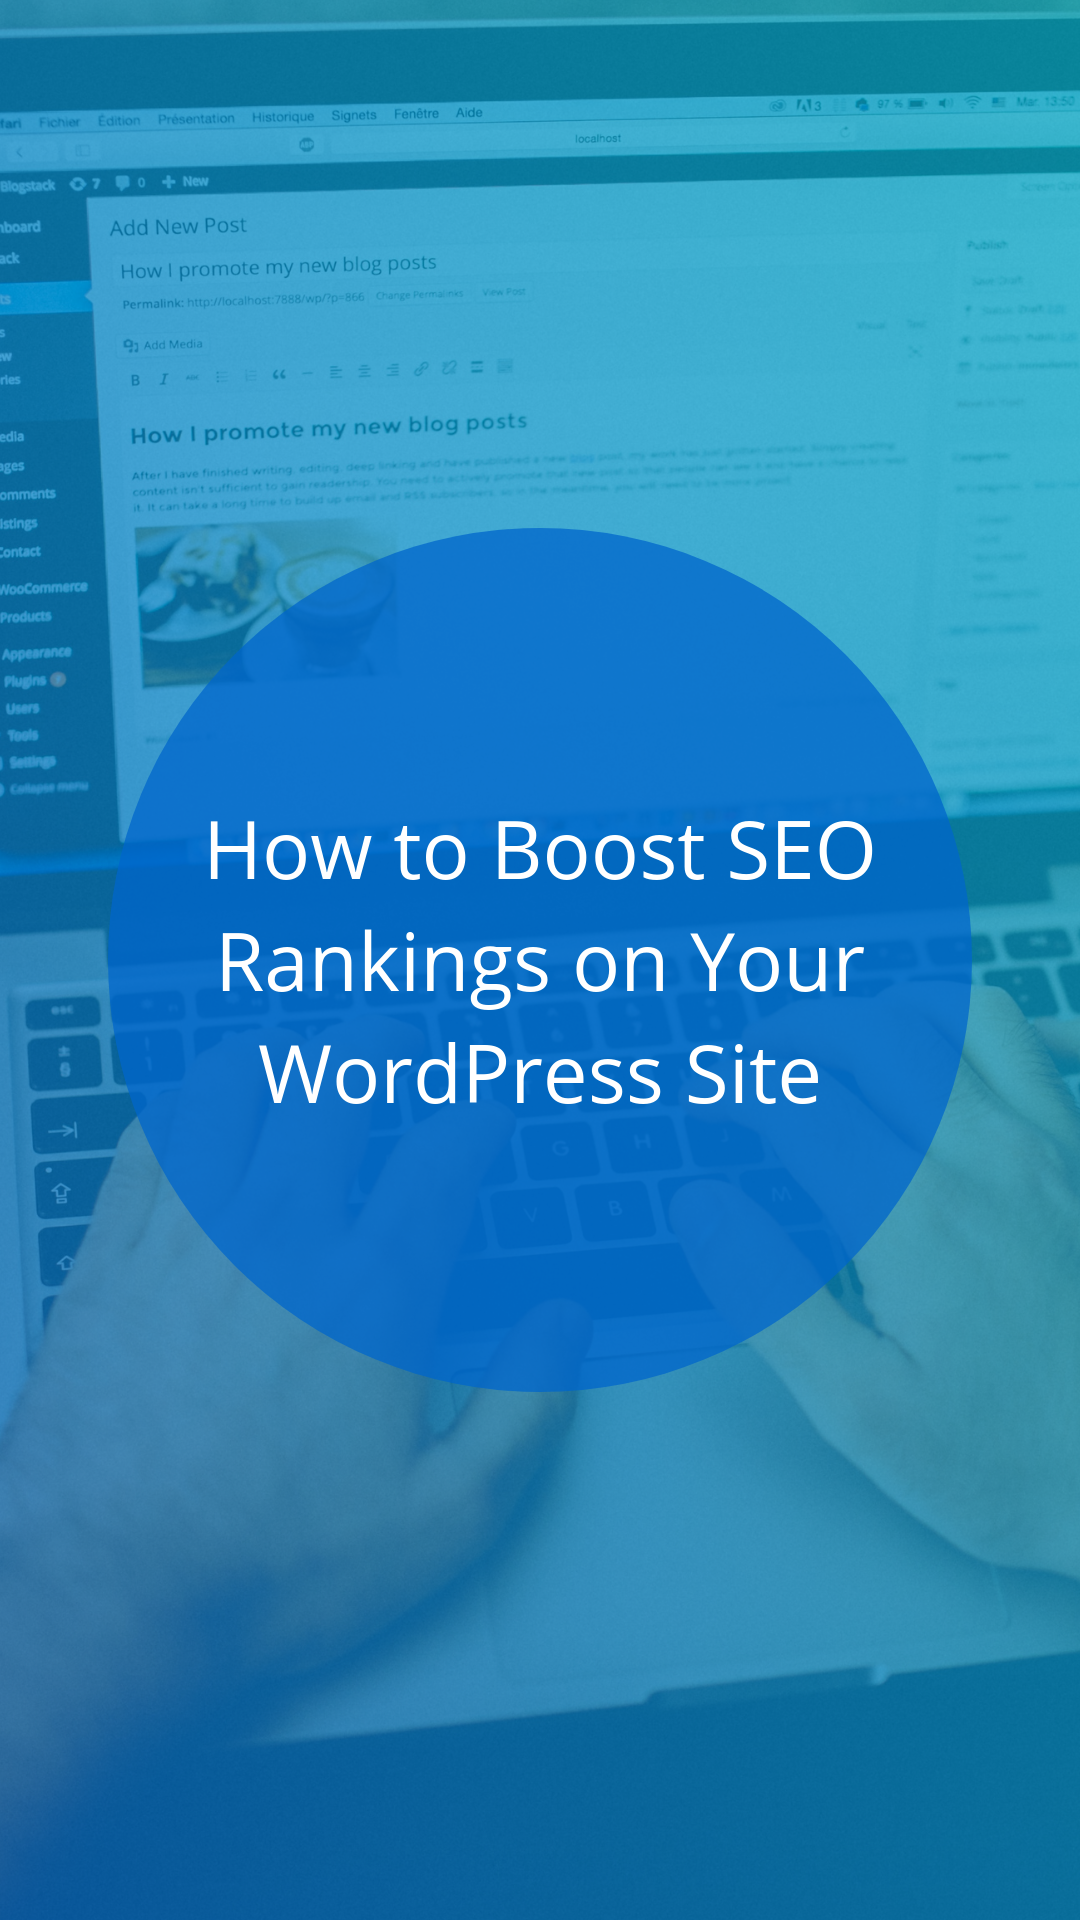 Below are some of our favorite tips for improving the SEO